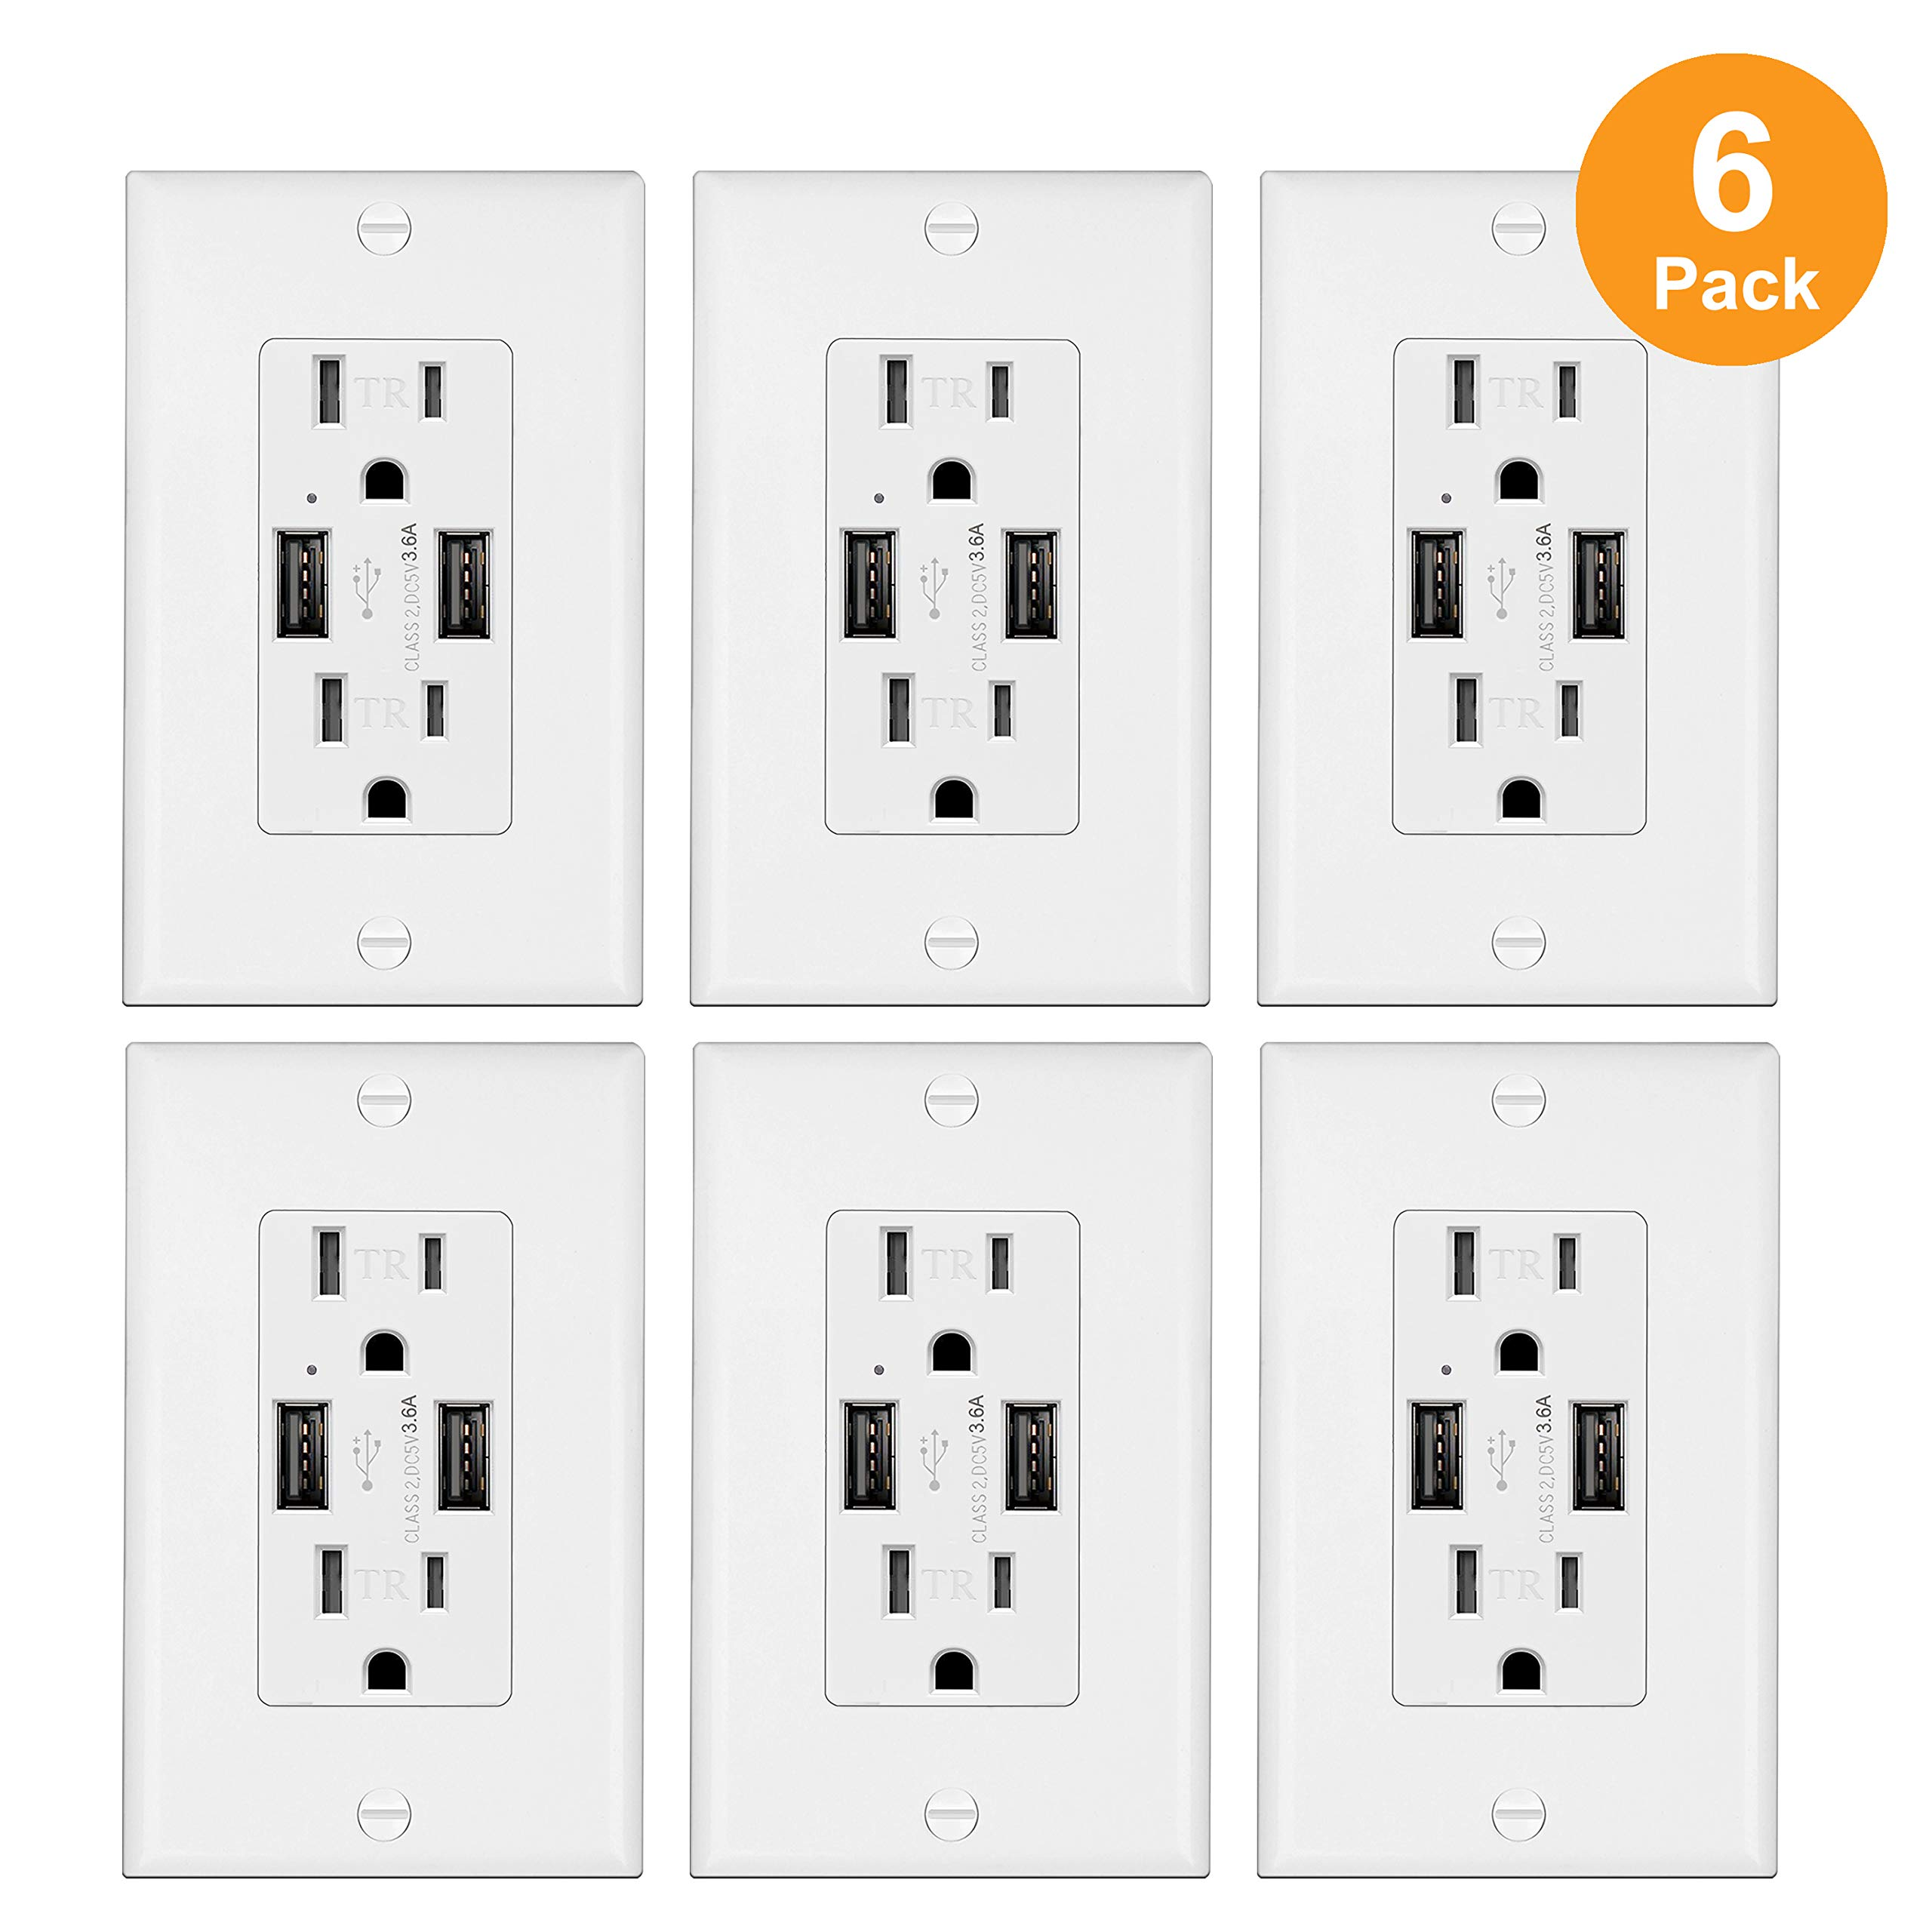 6 Pack - ELECTECK Dual 3.6A High Speed USB Quick Charging Ports, USB Wall Outlet Receptacles, 15A/125V/1875W, Decor Wall Plates and Mounting Screws Included, UL Listed, White by ELECTECK